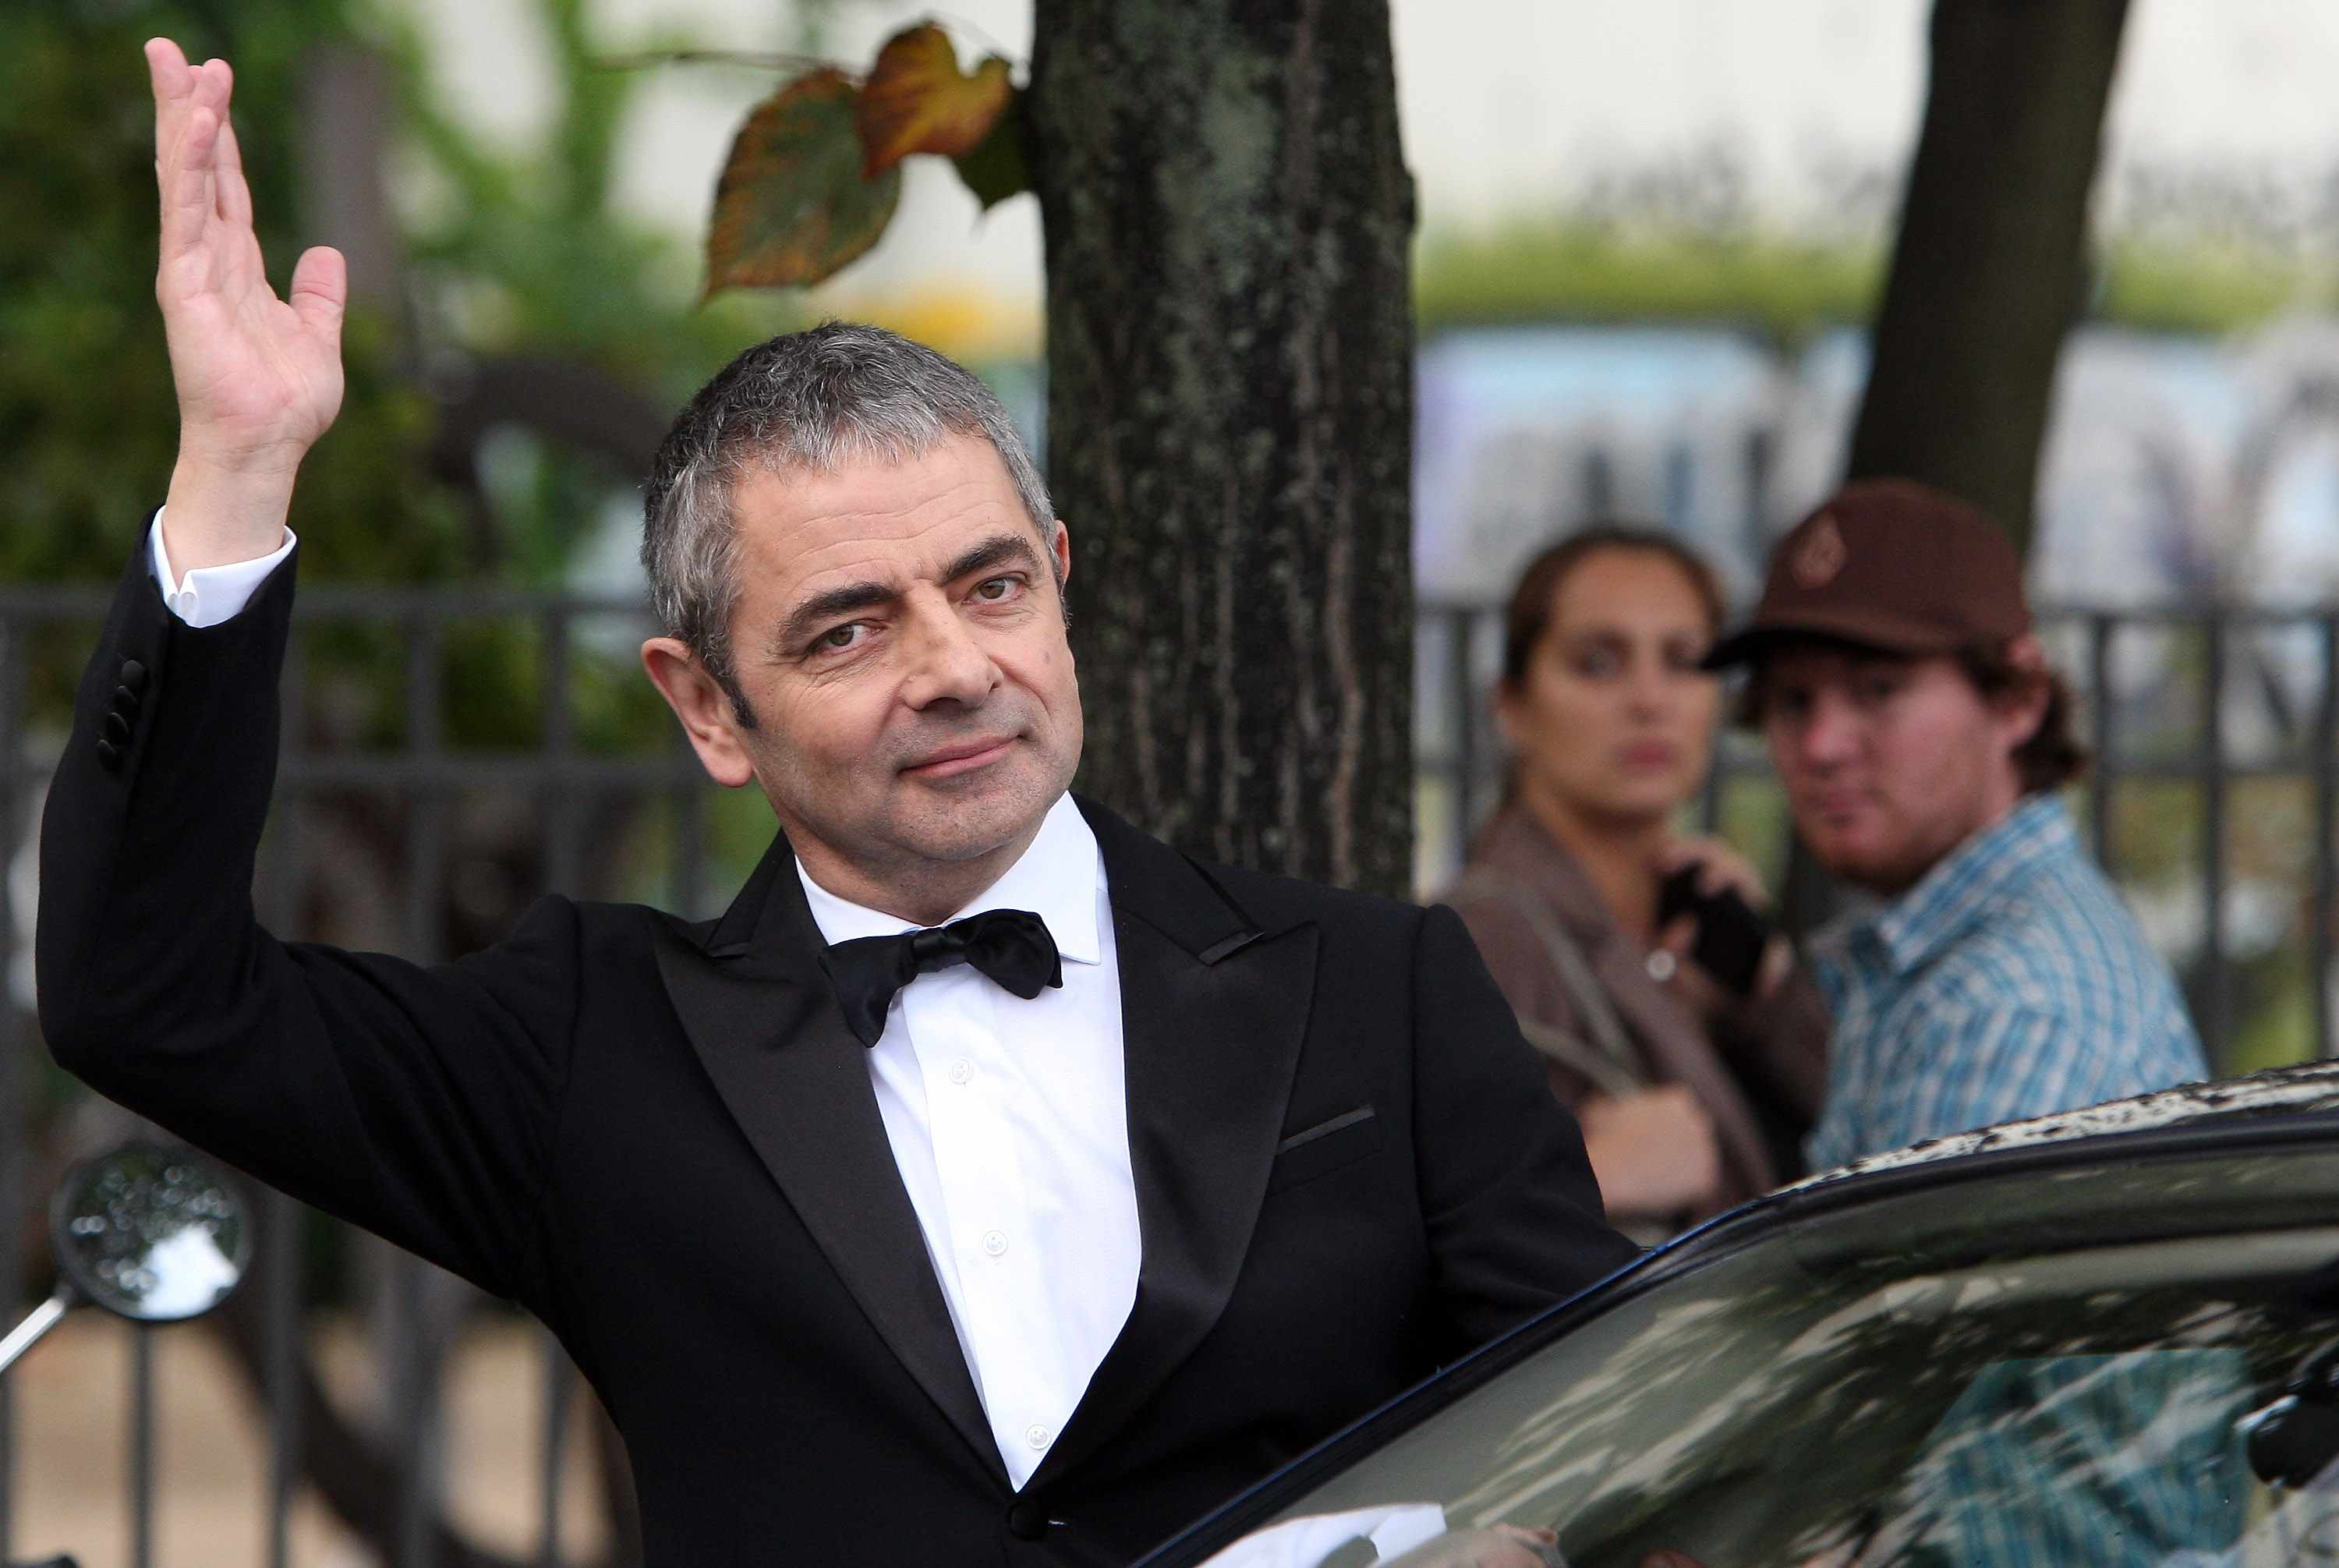 Rowan Atkinson as Johnny English